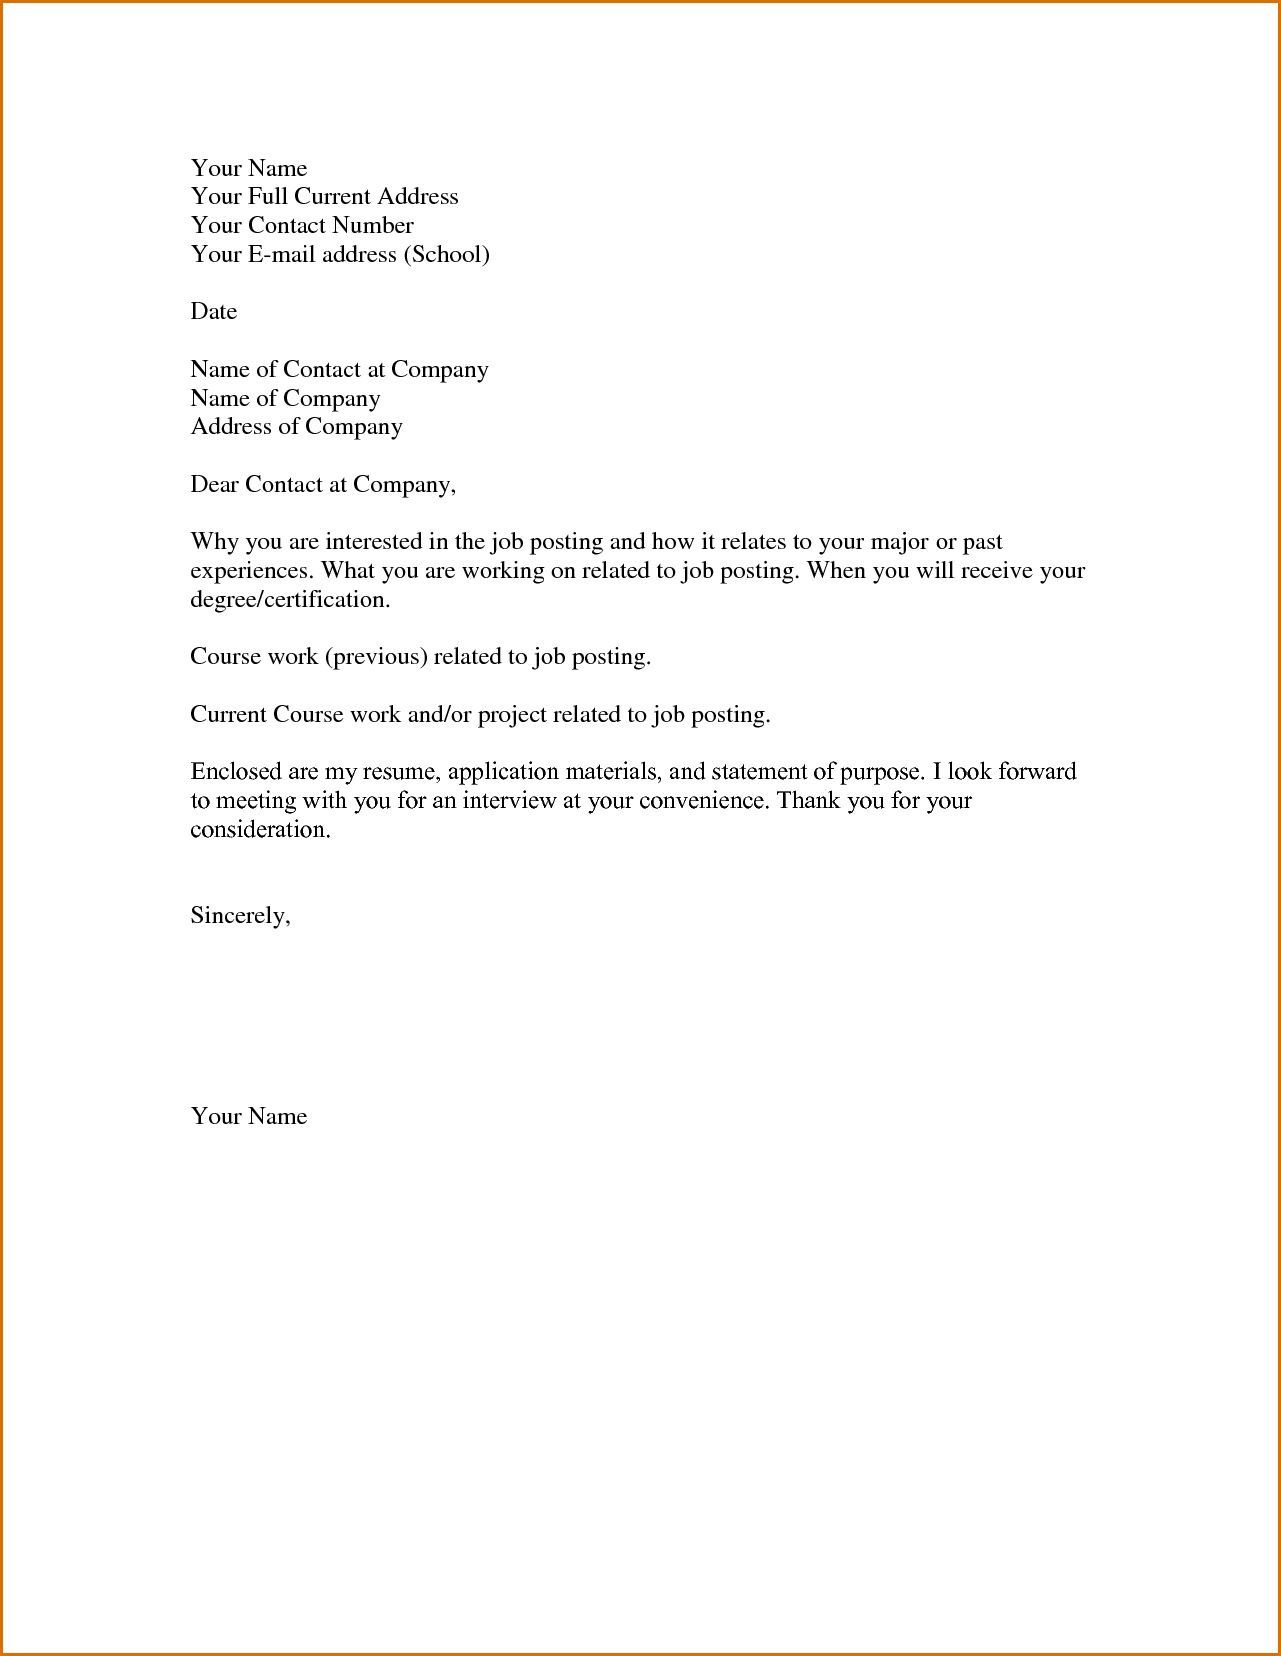 003 Stunning Basic Covering Letter Template Picture  Simple Application Job Sample CoverFull